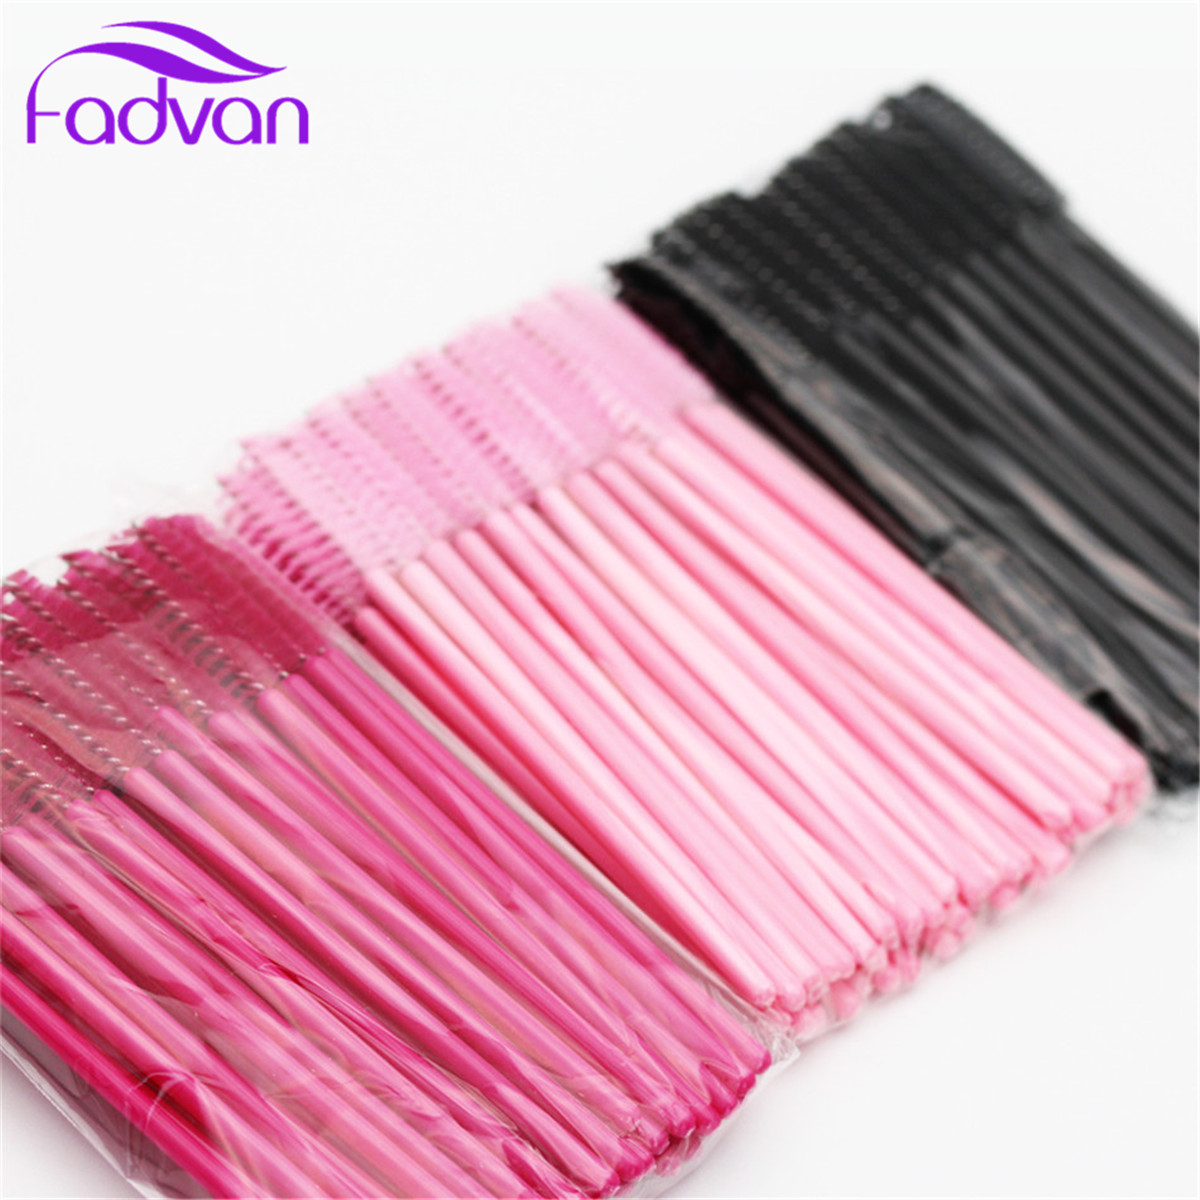 New 100 Pcs/Set Disposable Eyelash Brush Mascara Wands Applicator Spoolers Eye Lashes Eyebrow Brush Eyelash Brush Long Six Color дверь verda милена остекленная 2000х700 пвх миланский орех